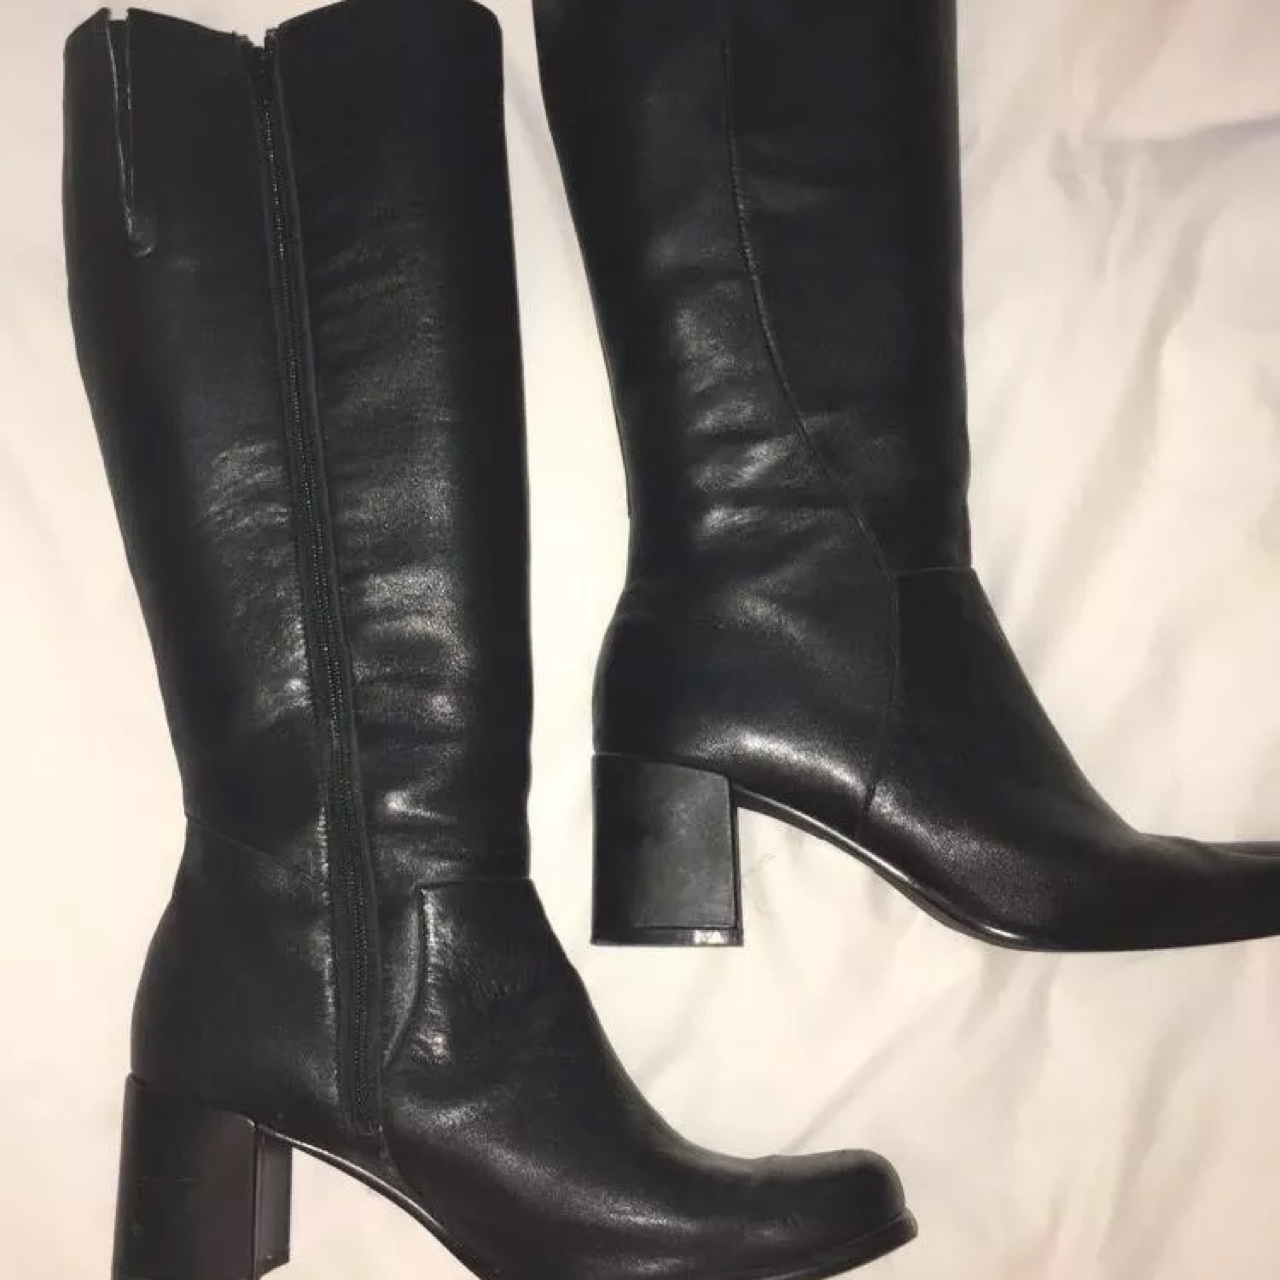 Black Knee High Boots | Shop Boots House of Fraser